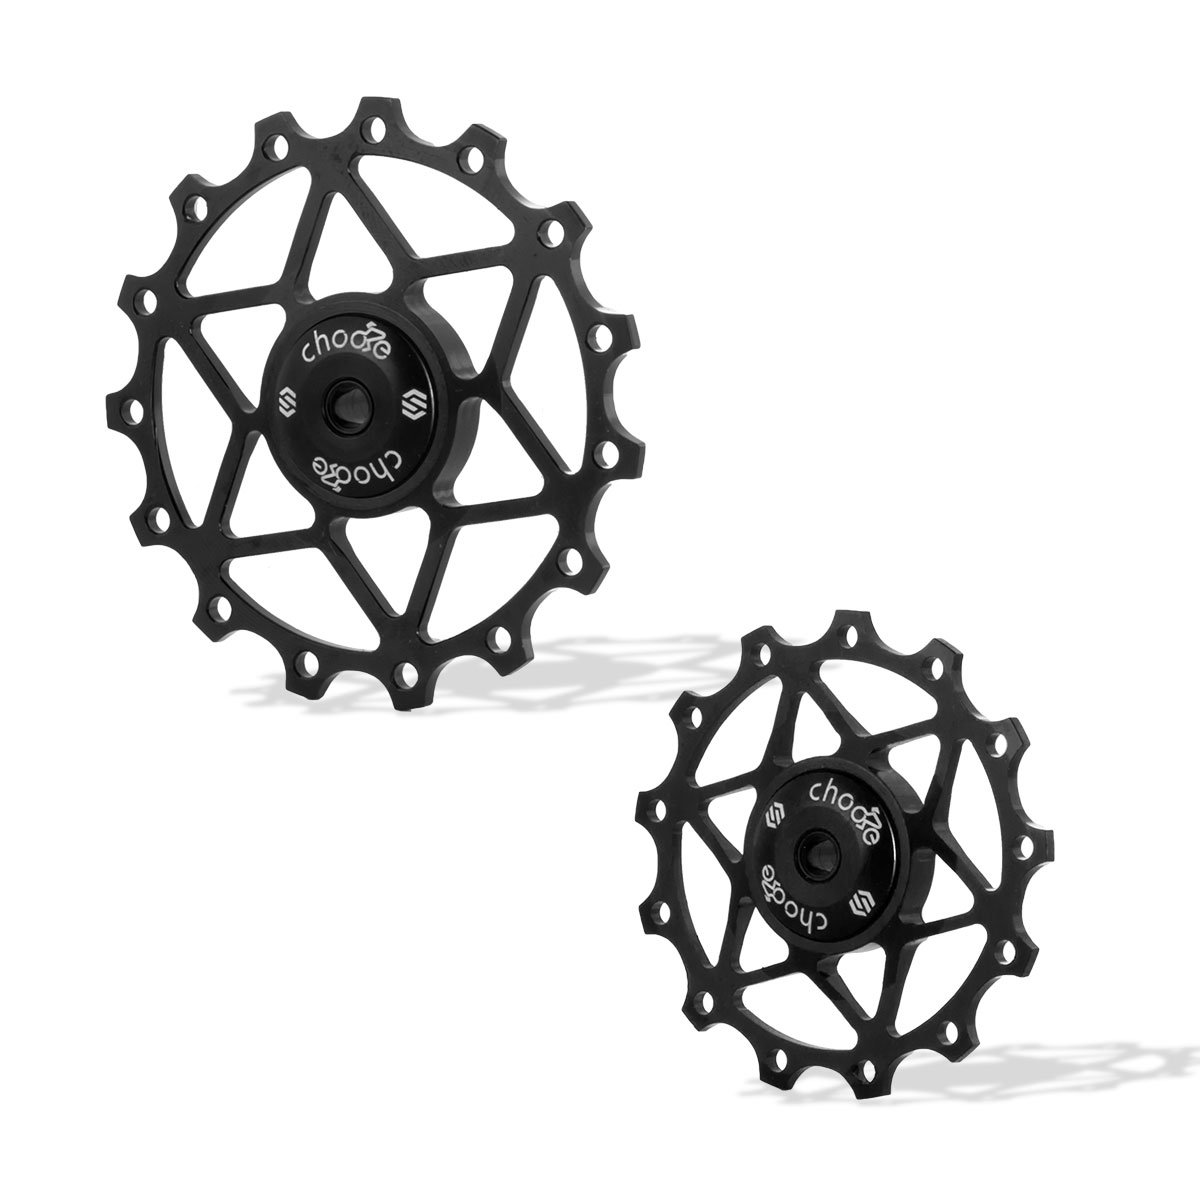 Chooee Black 13T Rear Derailleur Jockey Wheel Pulley Ceramic Bearing Shimano SRAM by Chooee